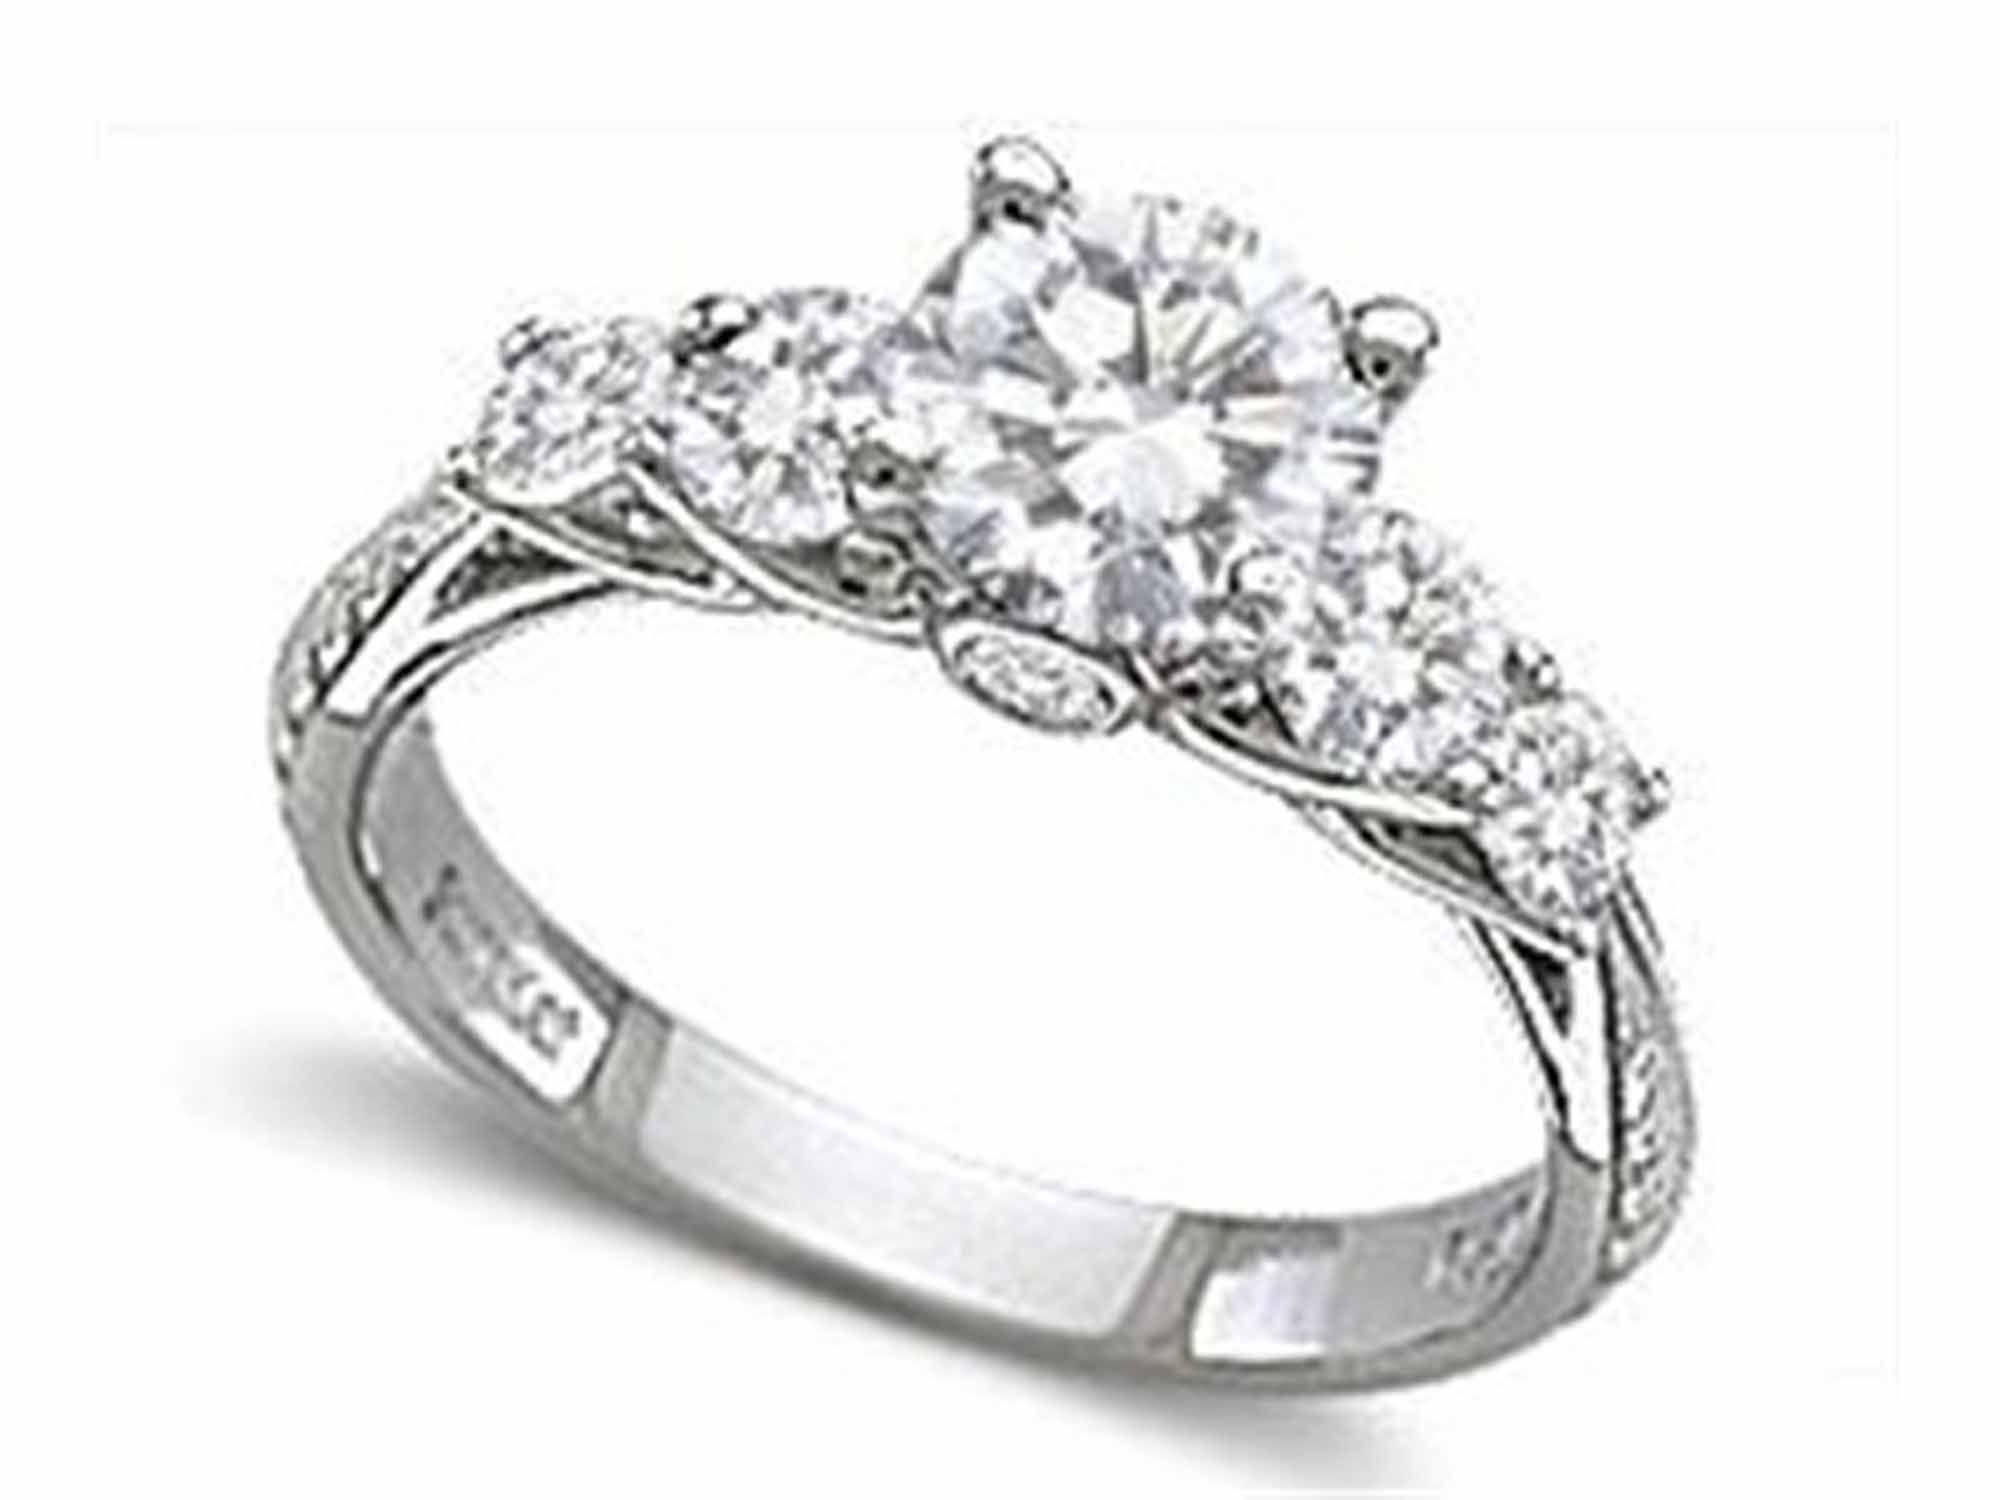 Best Surprise Your Fiance With Diamond Engagement Ring But How